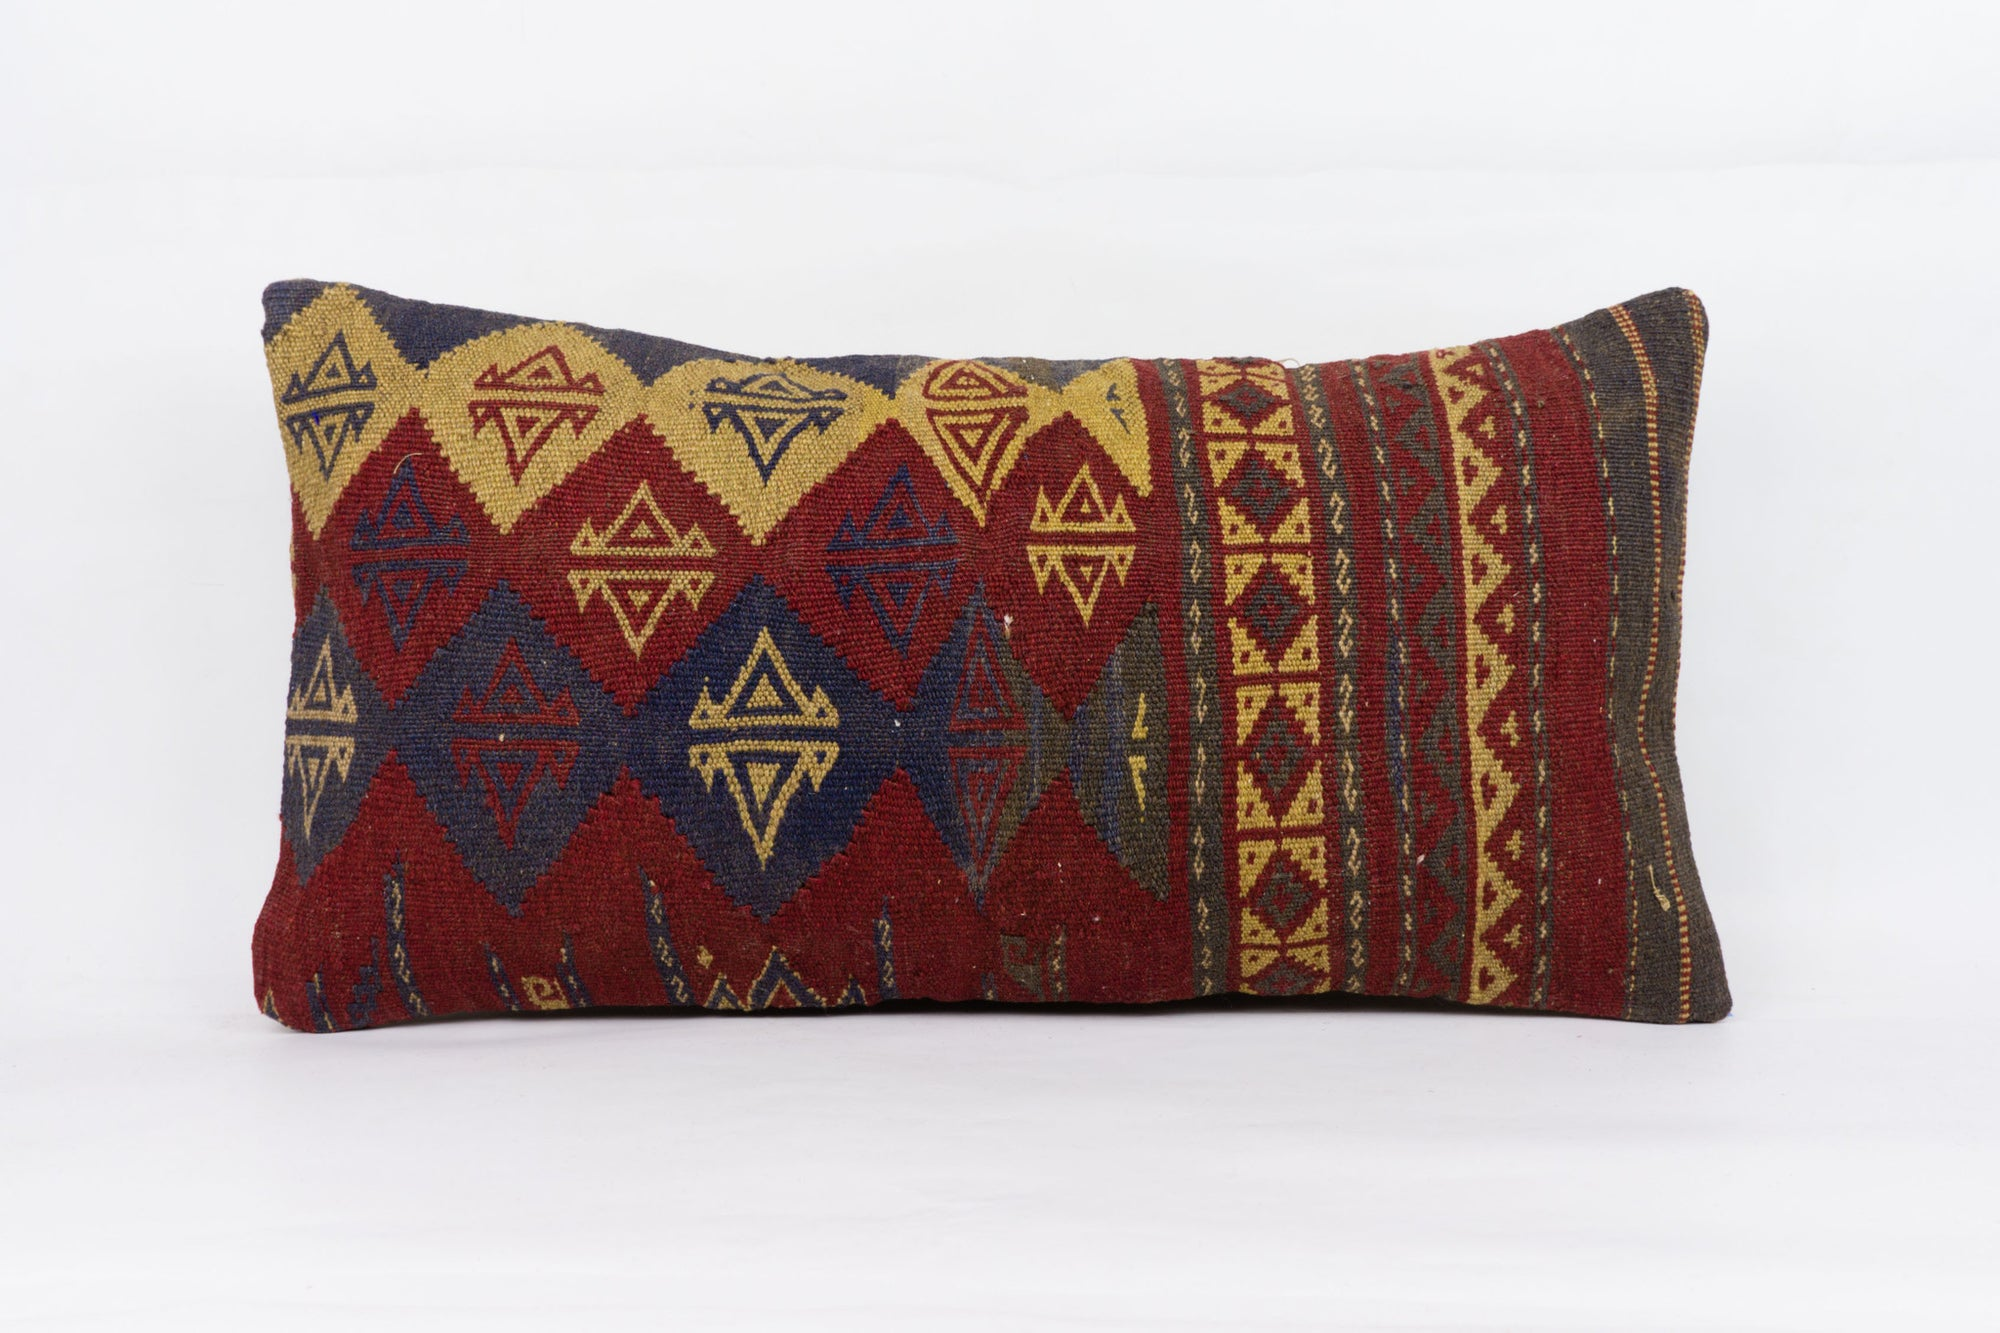 Geometric Red Kilim Pillow Cover 12x24 4243